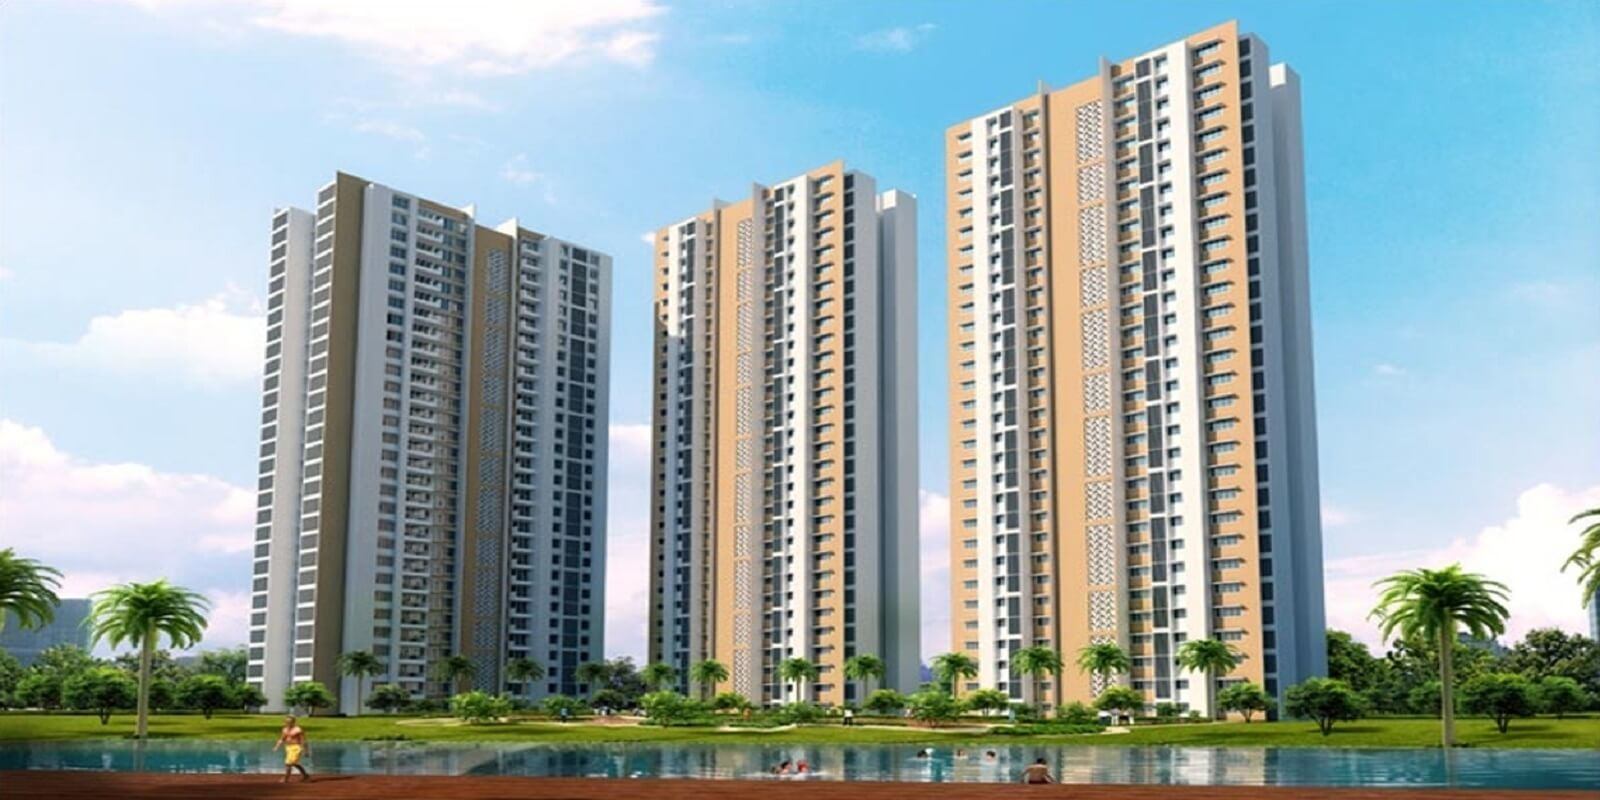 lodha luxuria priva project large image1